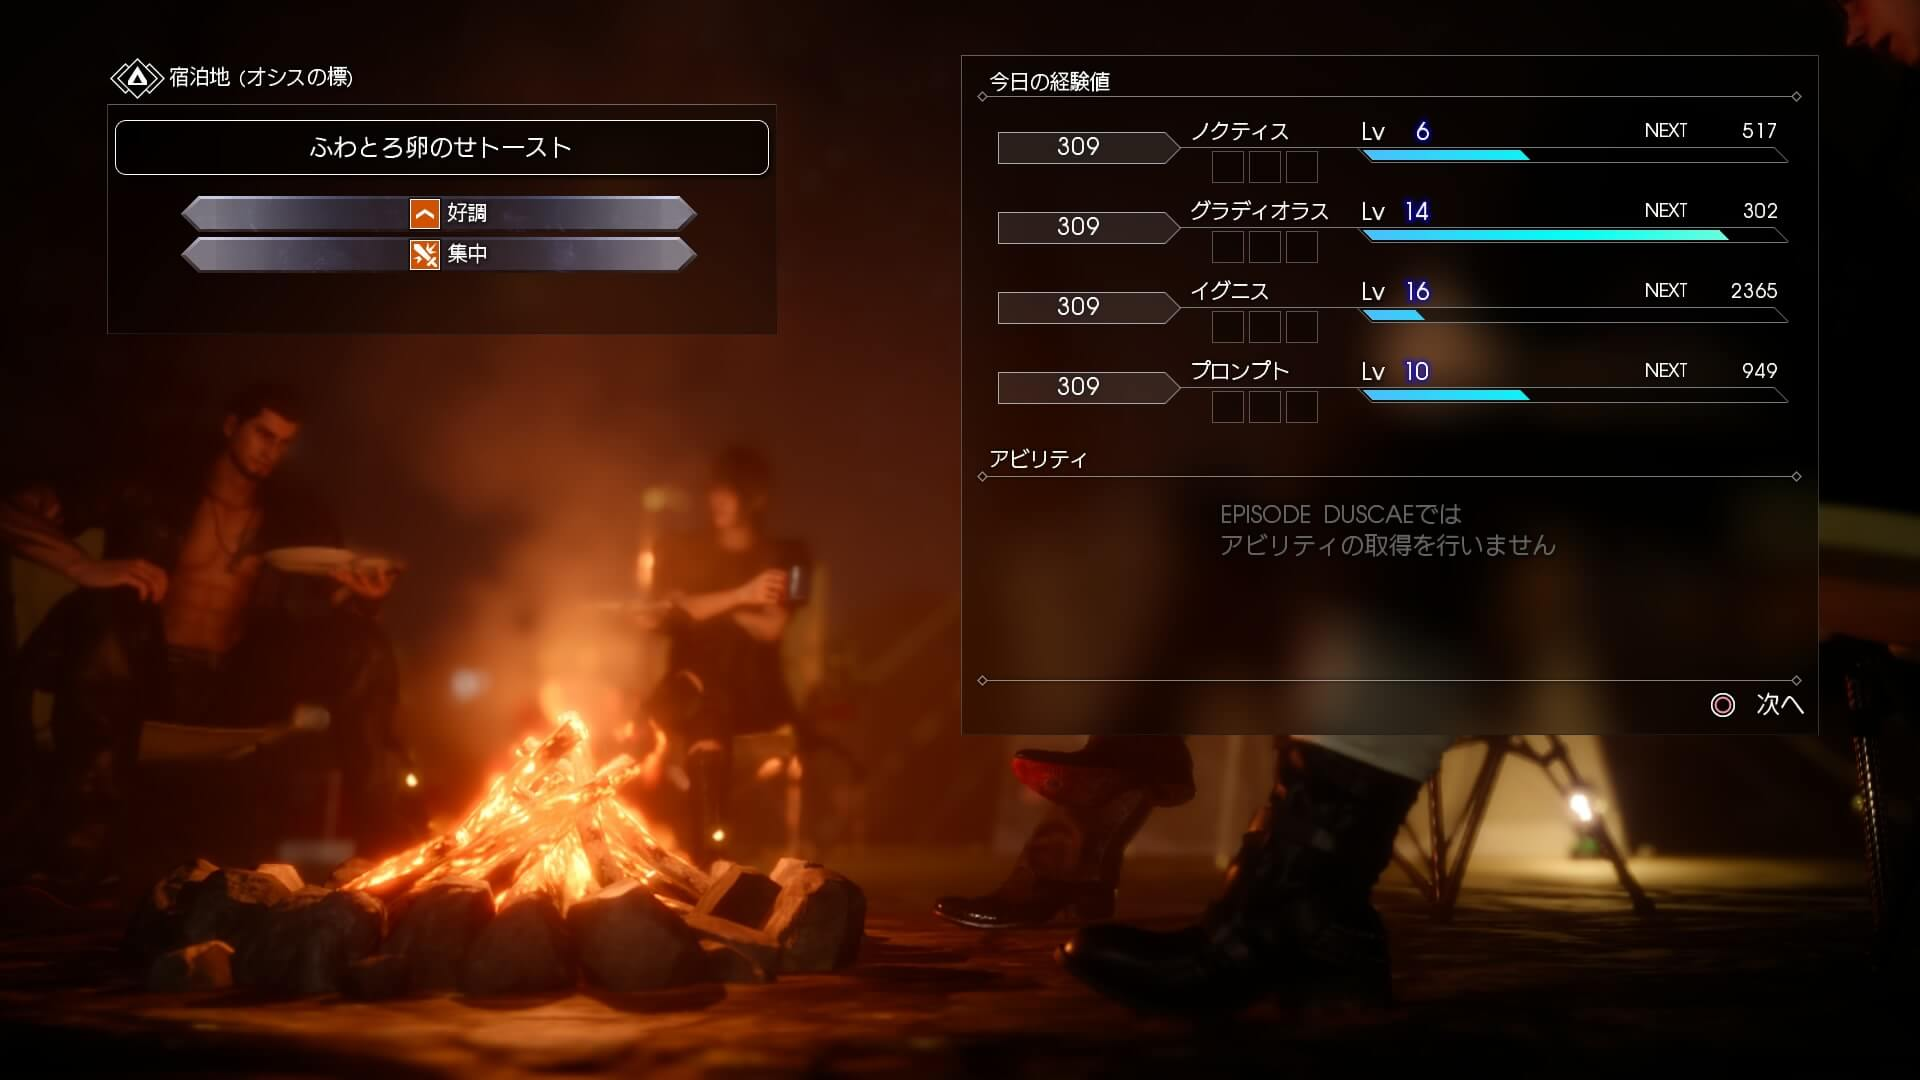 FINAL FANTASY XV EPISODE DUSCAE_20150320161856